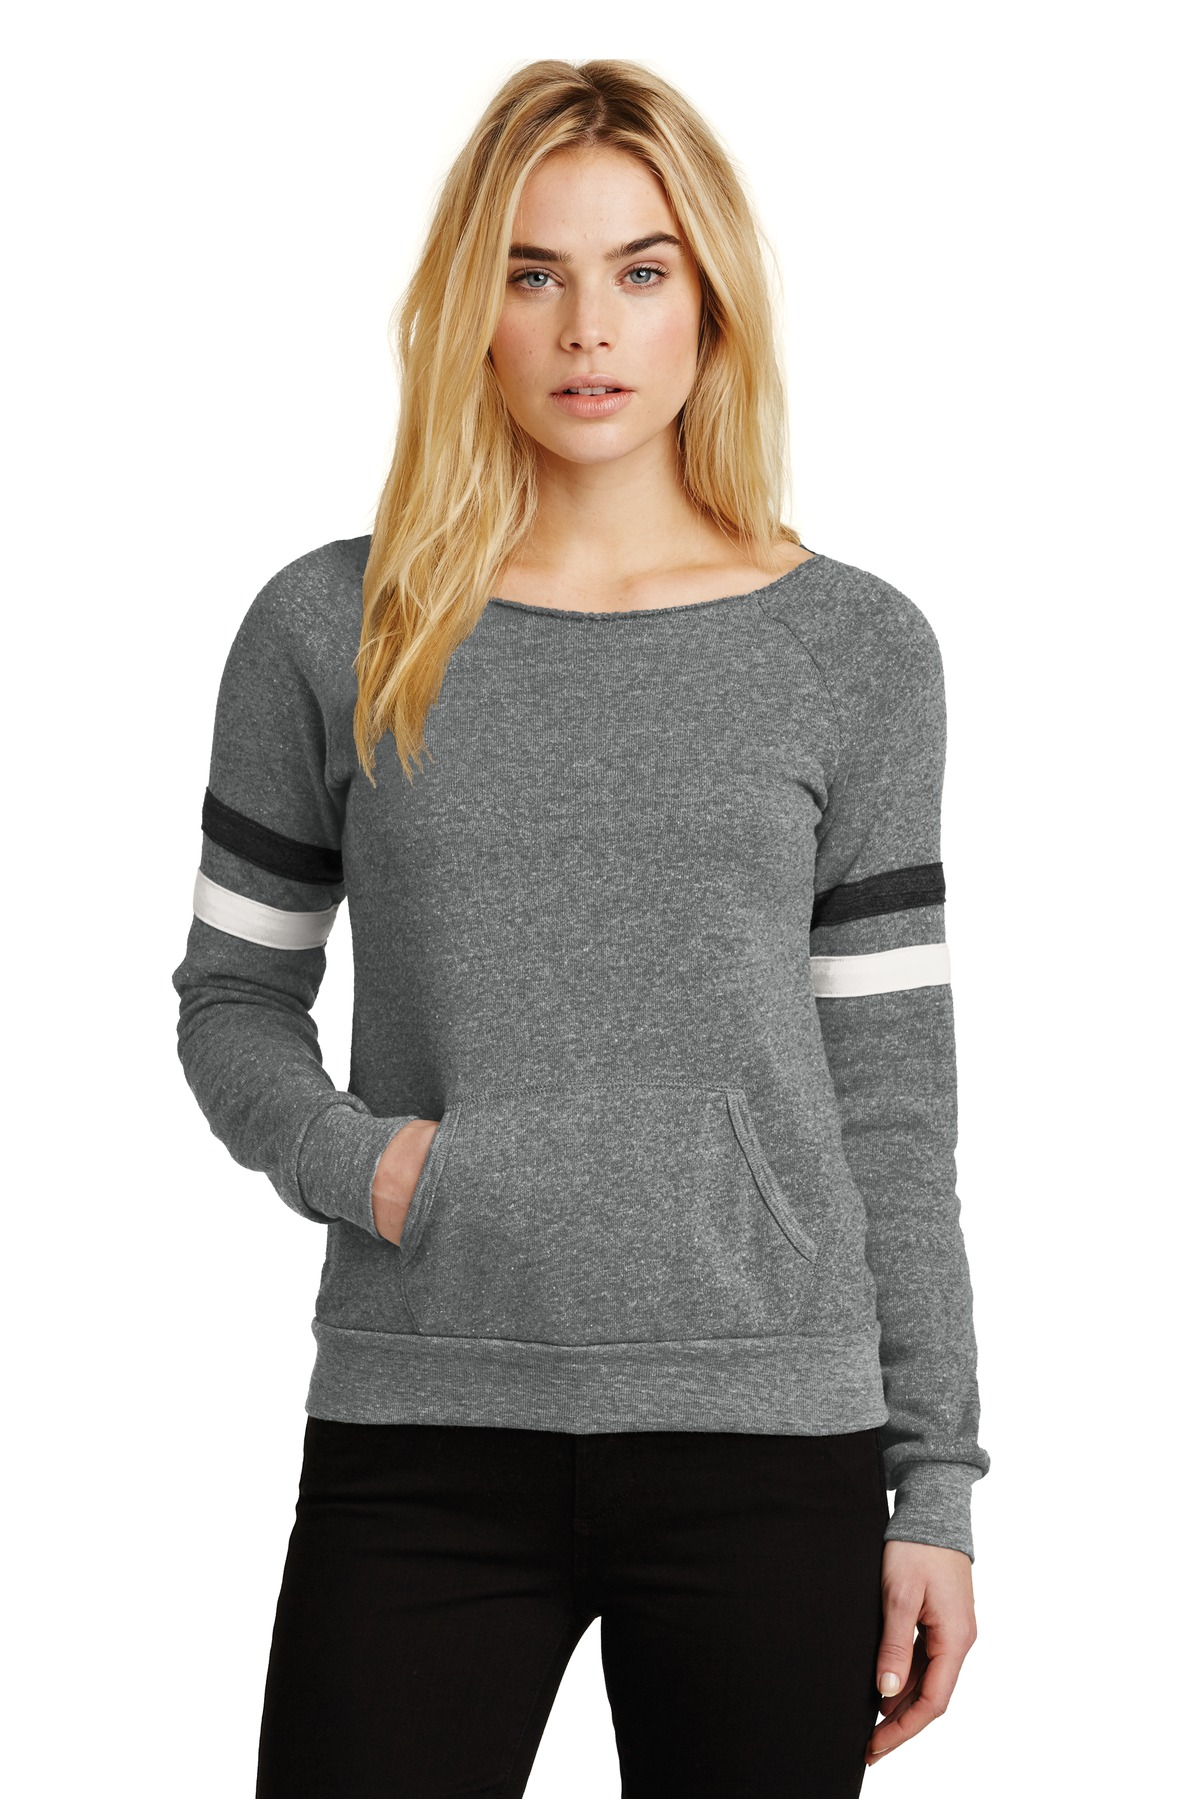 Alternative Women's Maniac Sport Eco ™ -Fleece Sweatshirt. AA9583 - Eco Grey/ Eco Black/ Eco Ivory